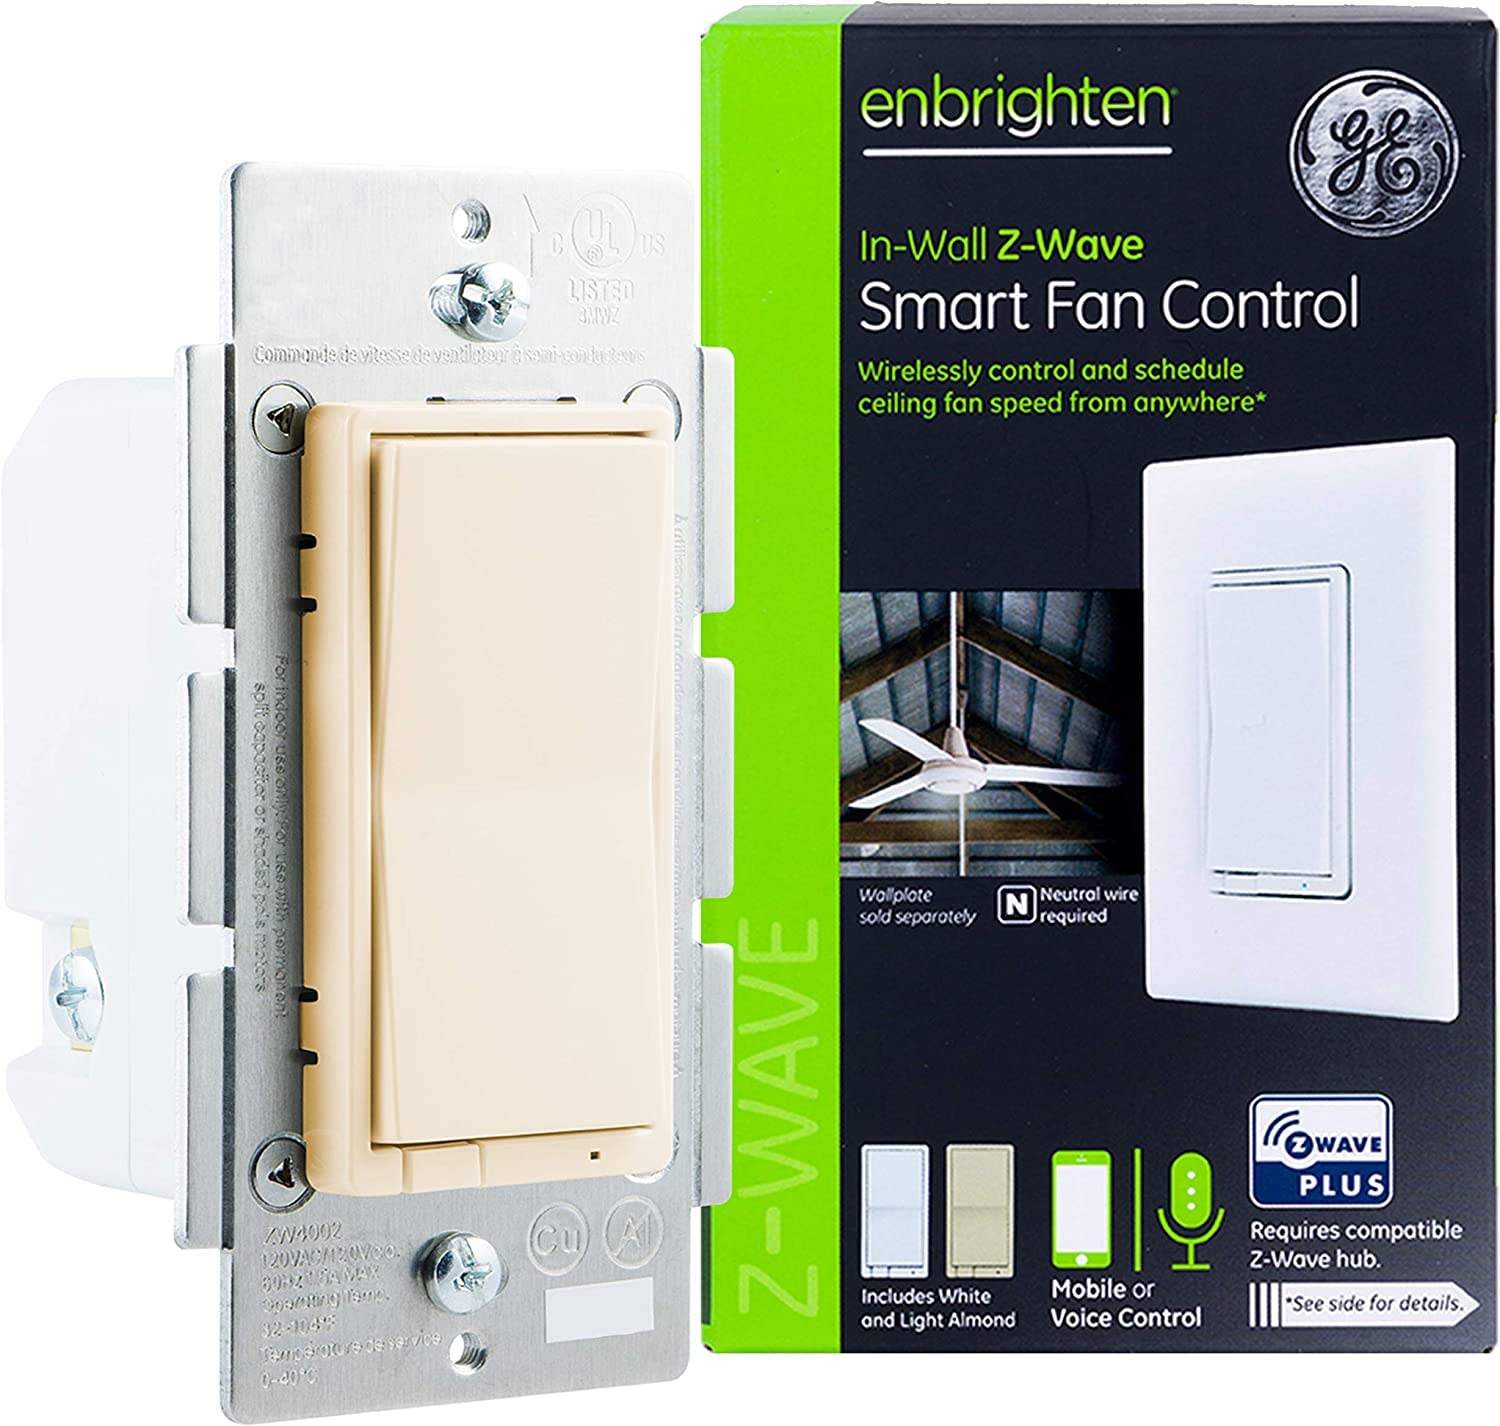 GE Enbrighten Z-Wave Plus Smart Fan Control, Works with Alexa, Google Assistant, 3-Way Compatible, ZWave Hub Required, Repeater/Range Extender, Ivory, 38194